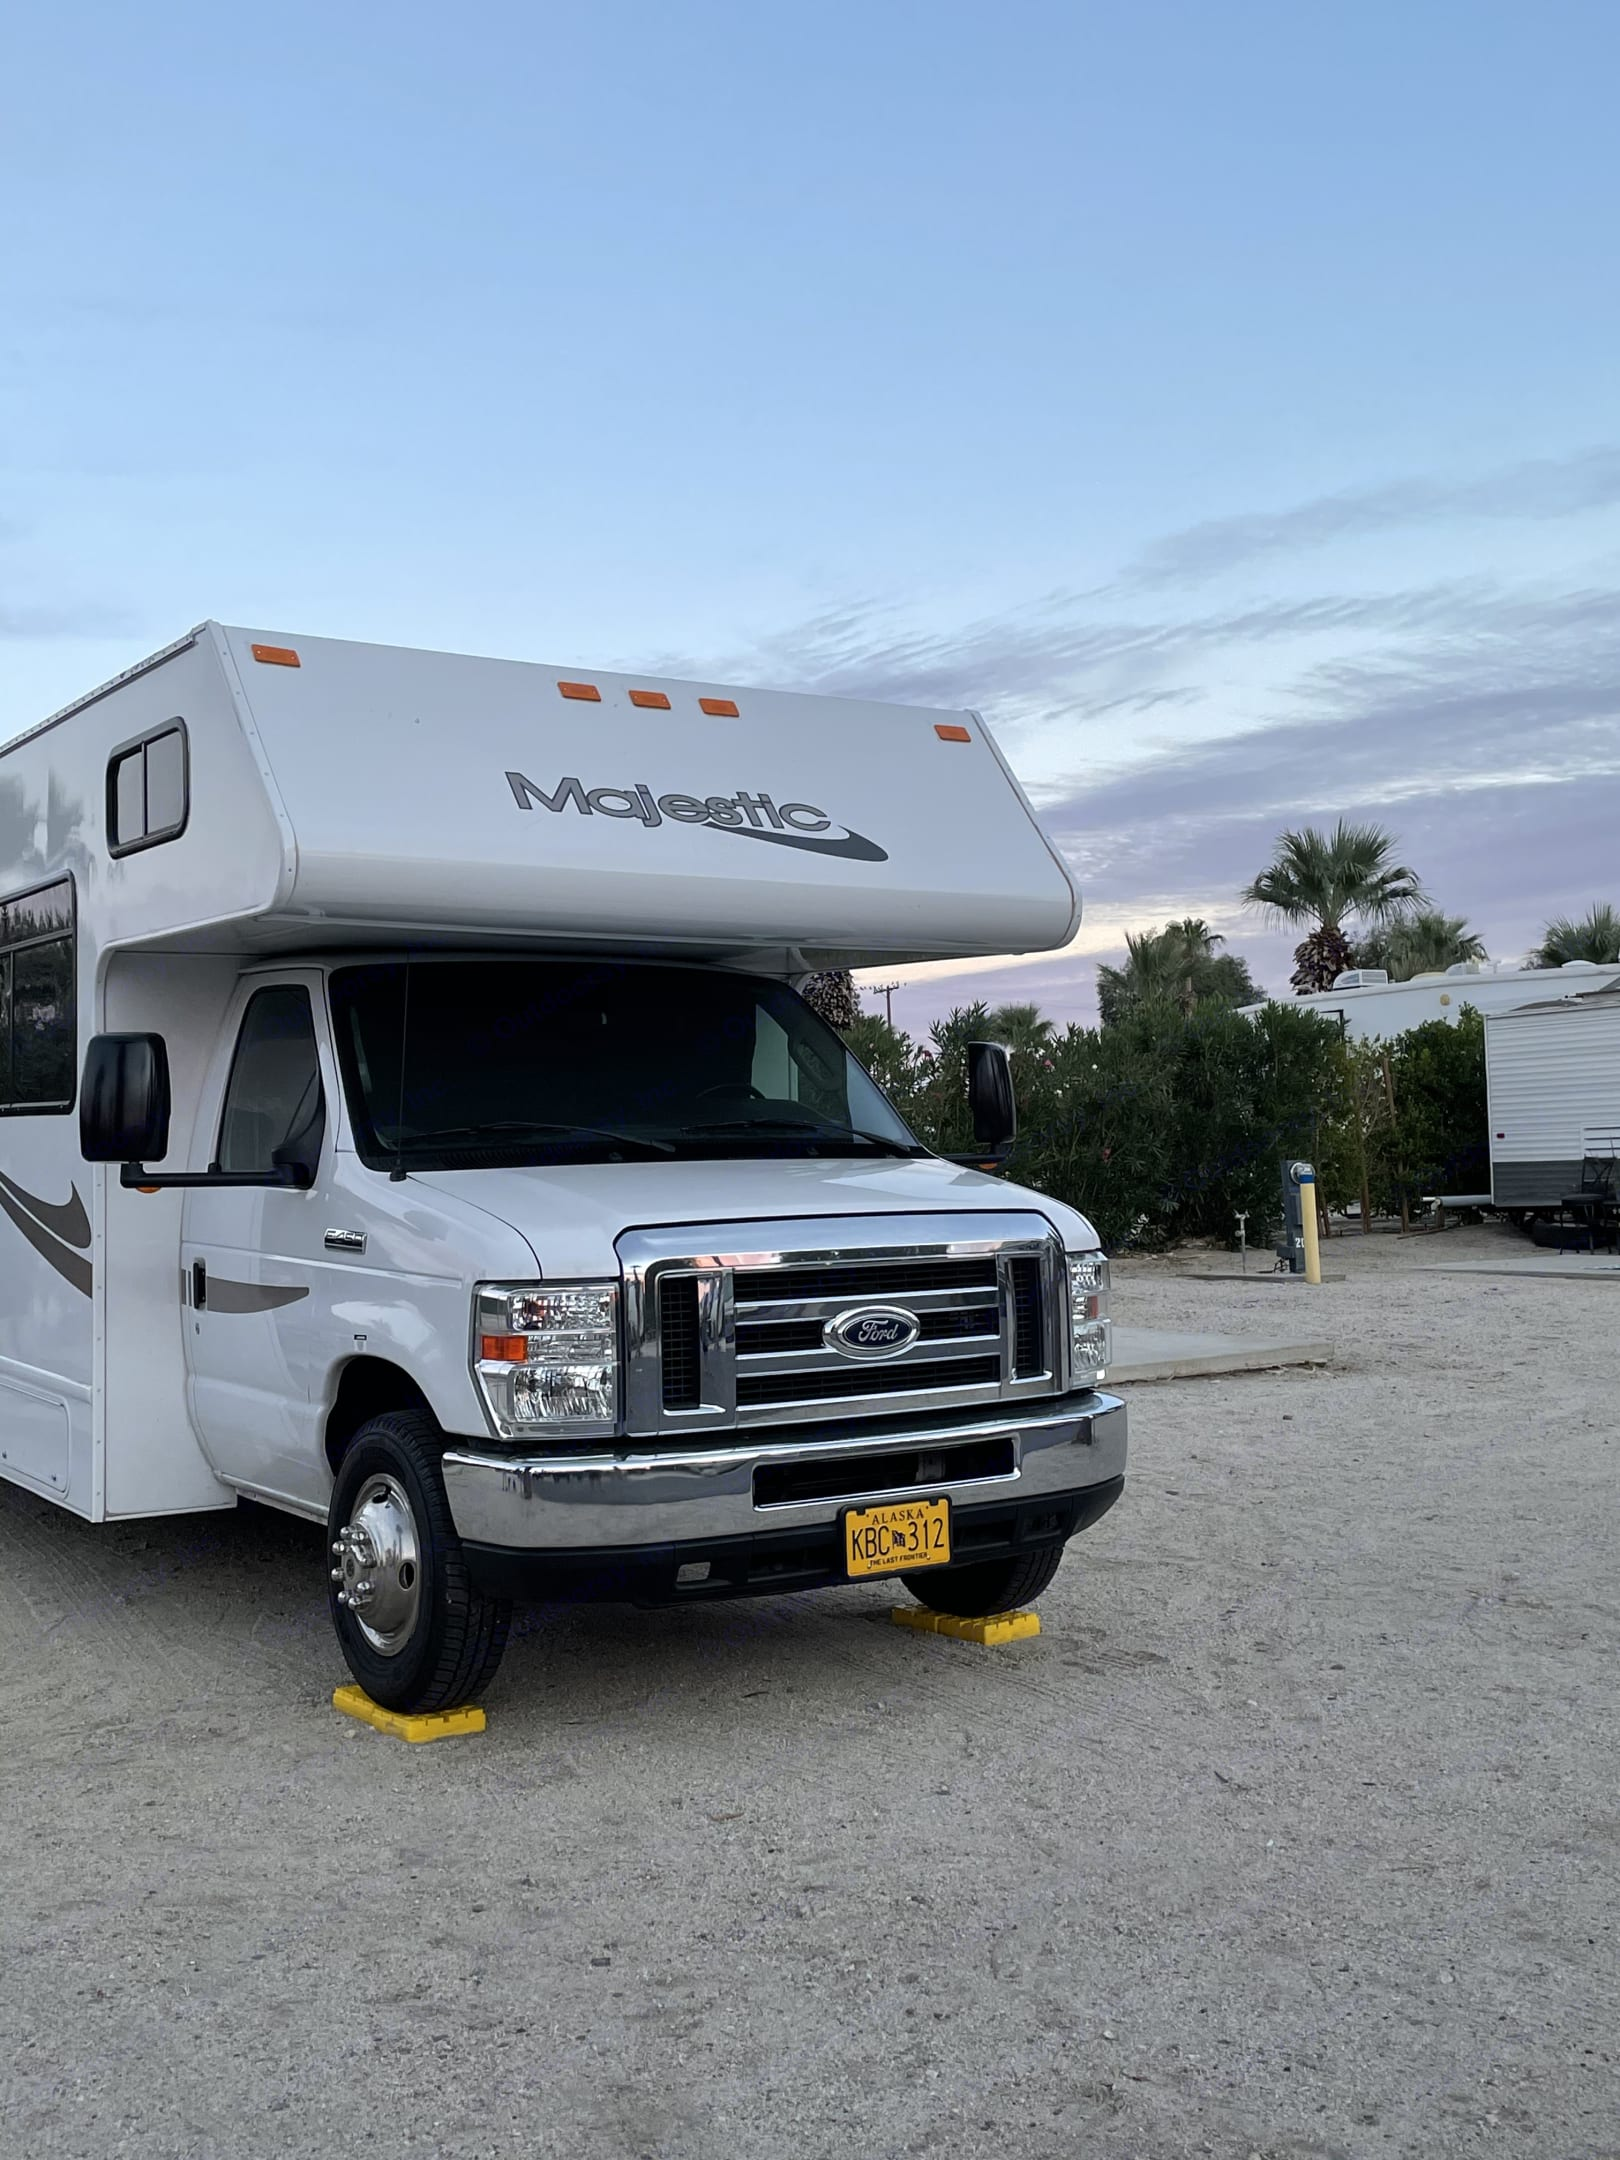 Front of Vehicle Large Mirrors. Thor Motor Coach Four Winds Majestic 2016